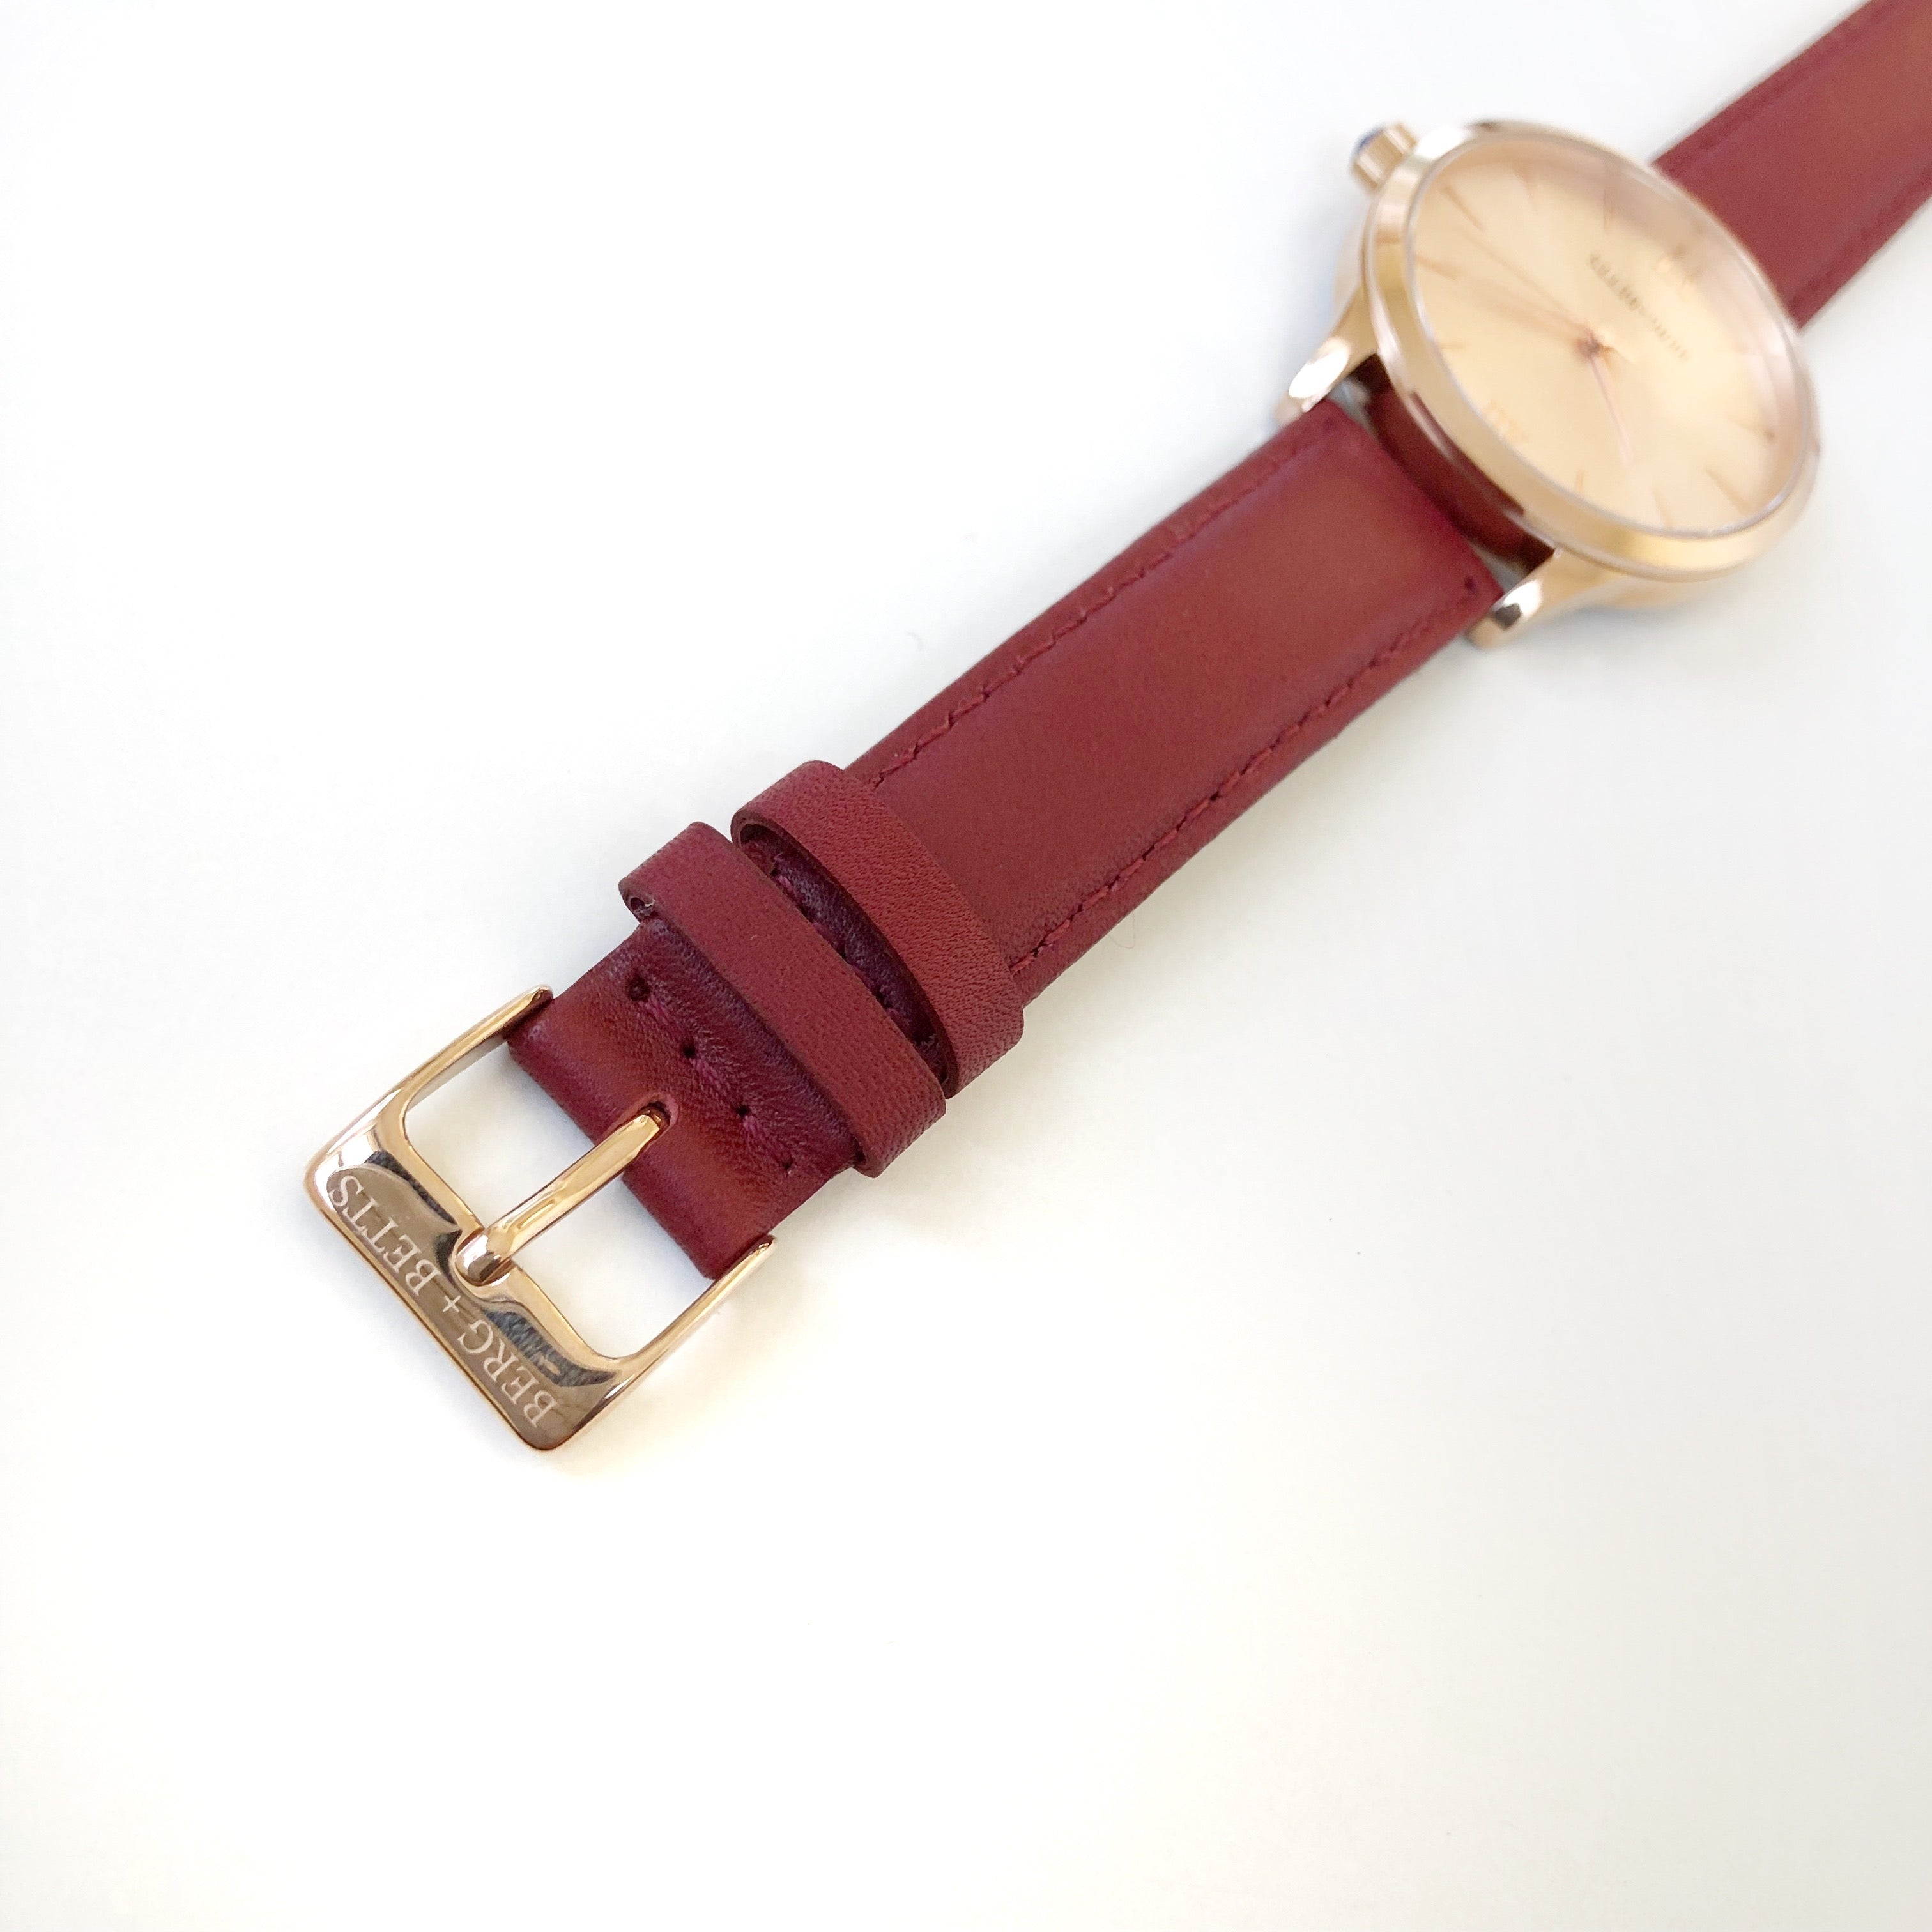 Minimalistic round rose gold watch ethically made with burgundy strap made from recycled leather